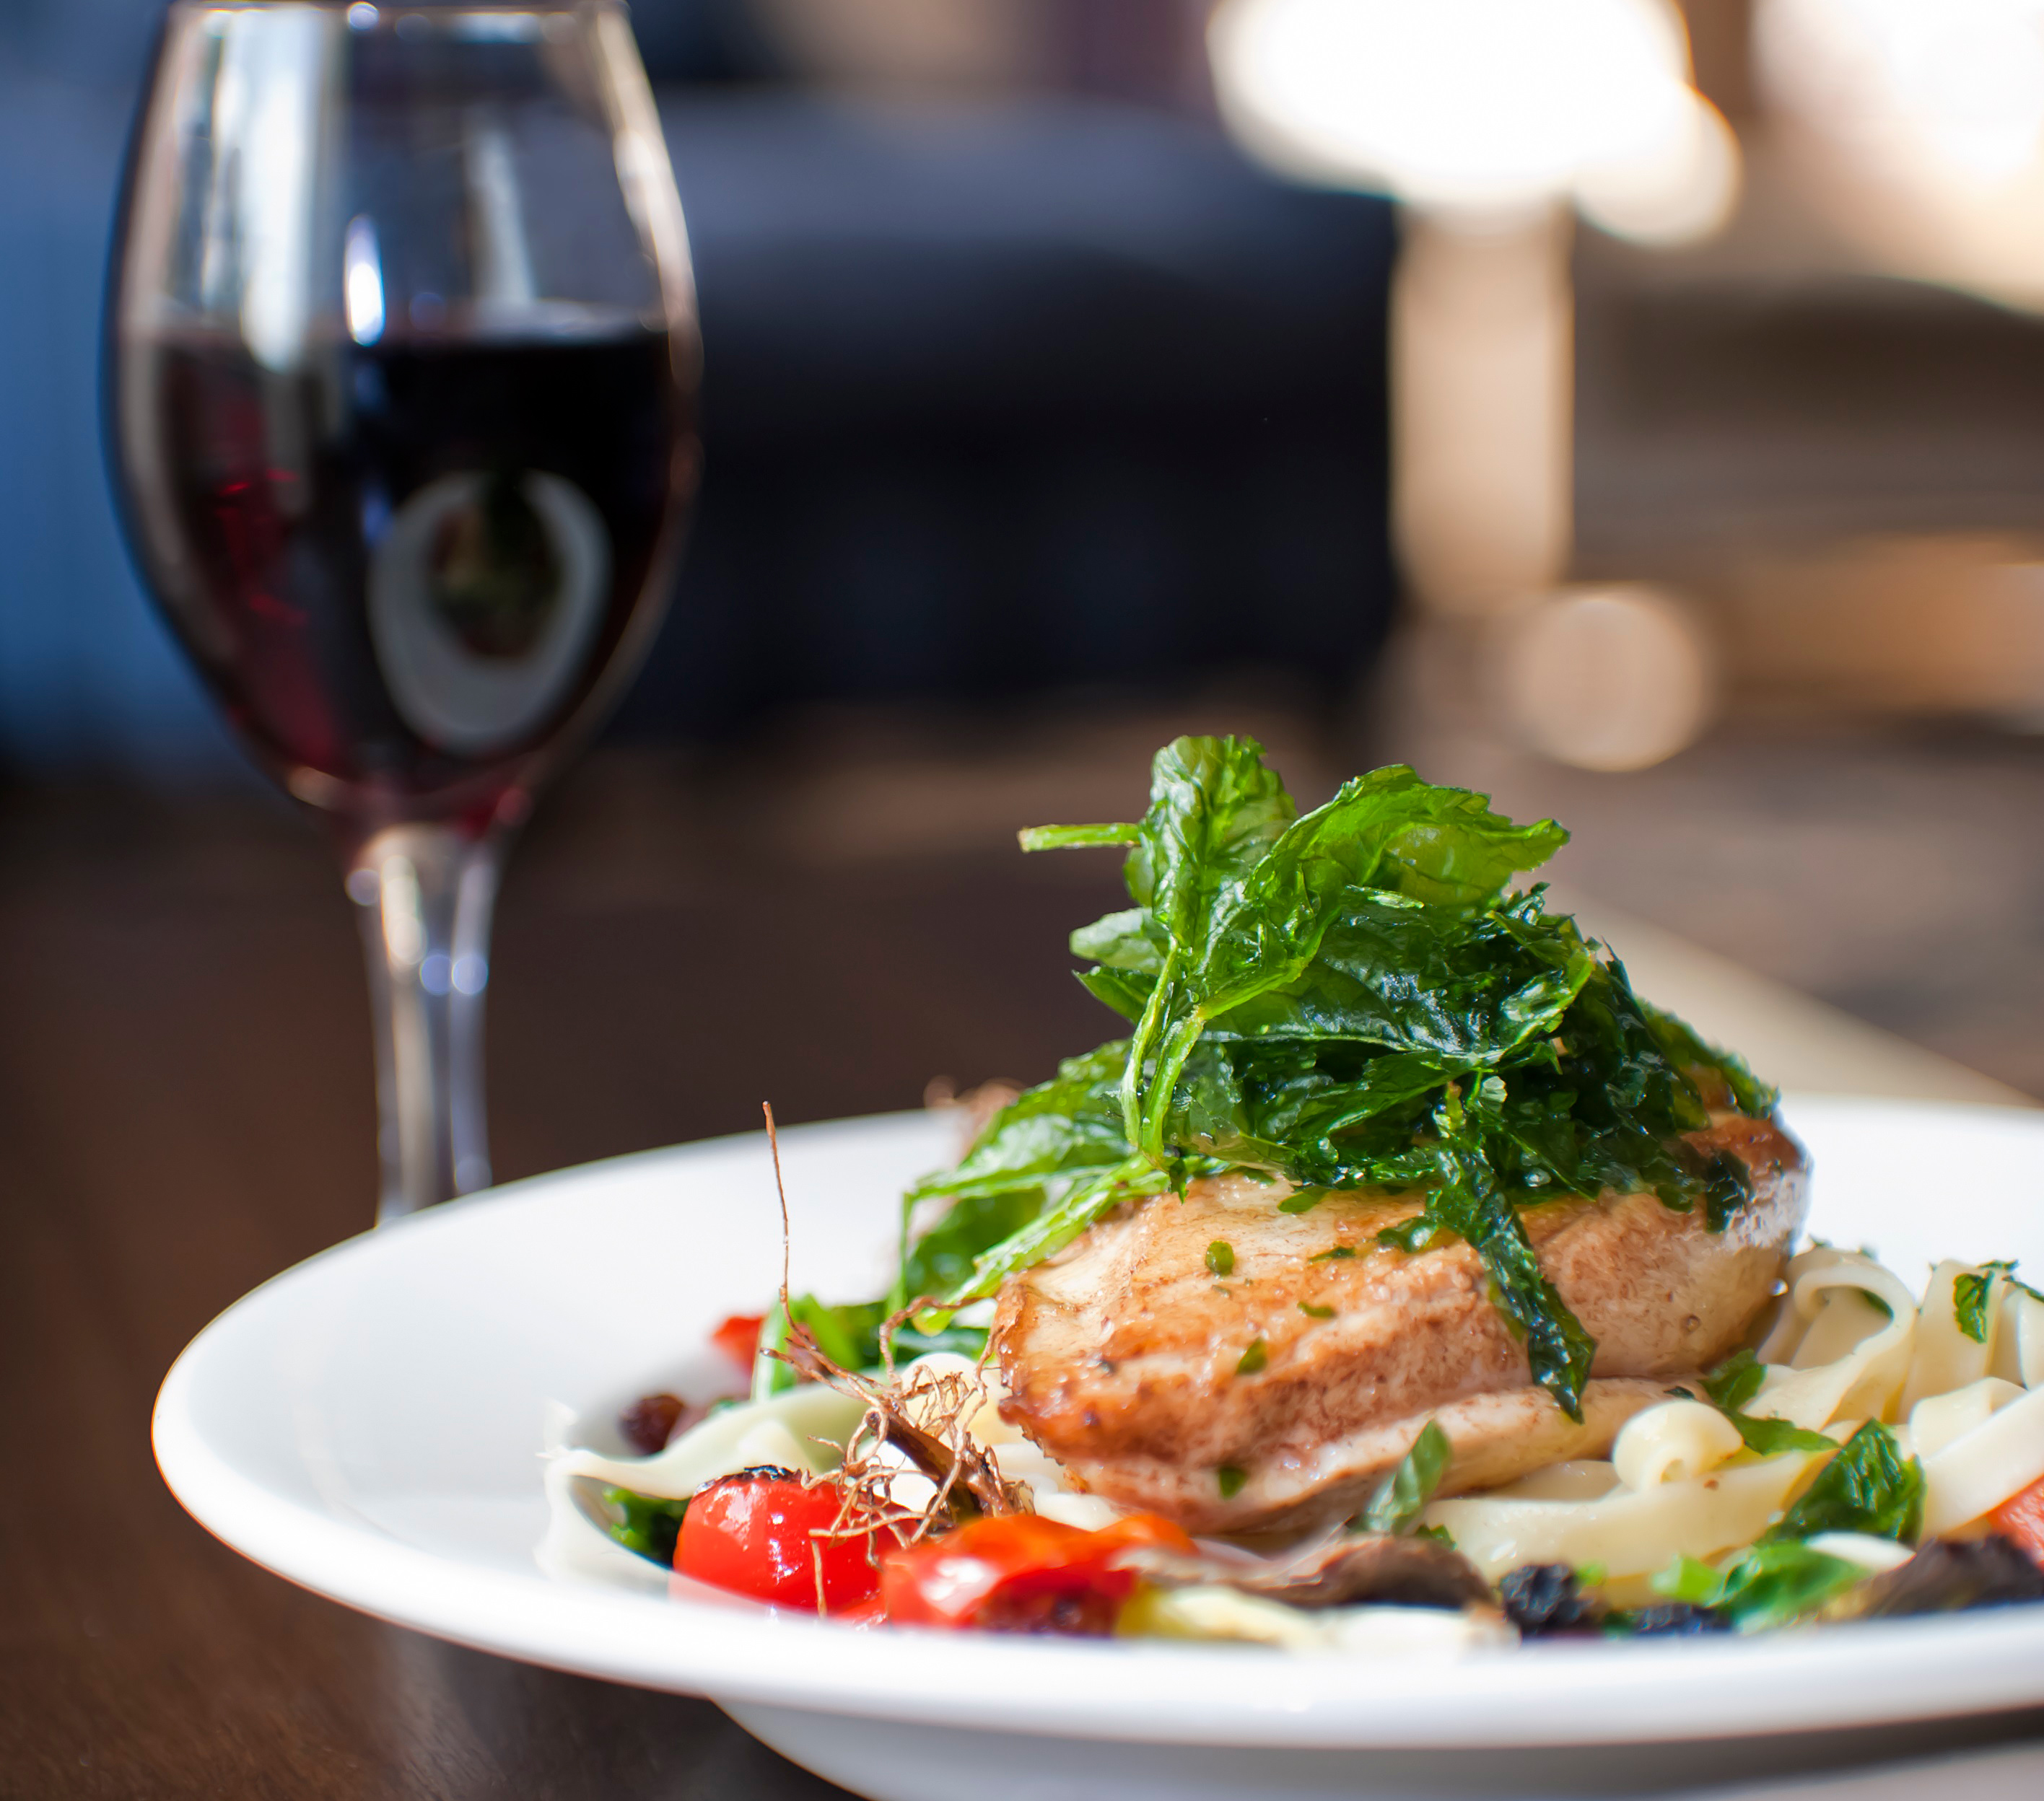 Reserve a table at Grosvenor - Swansea